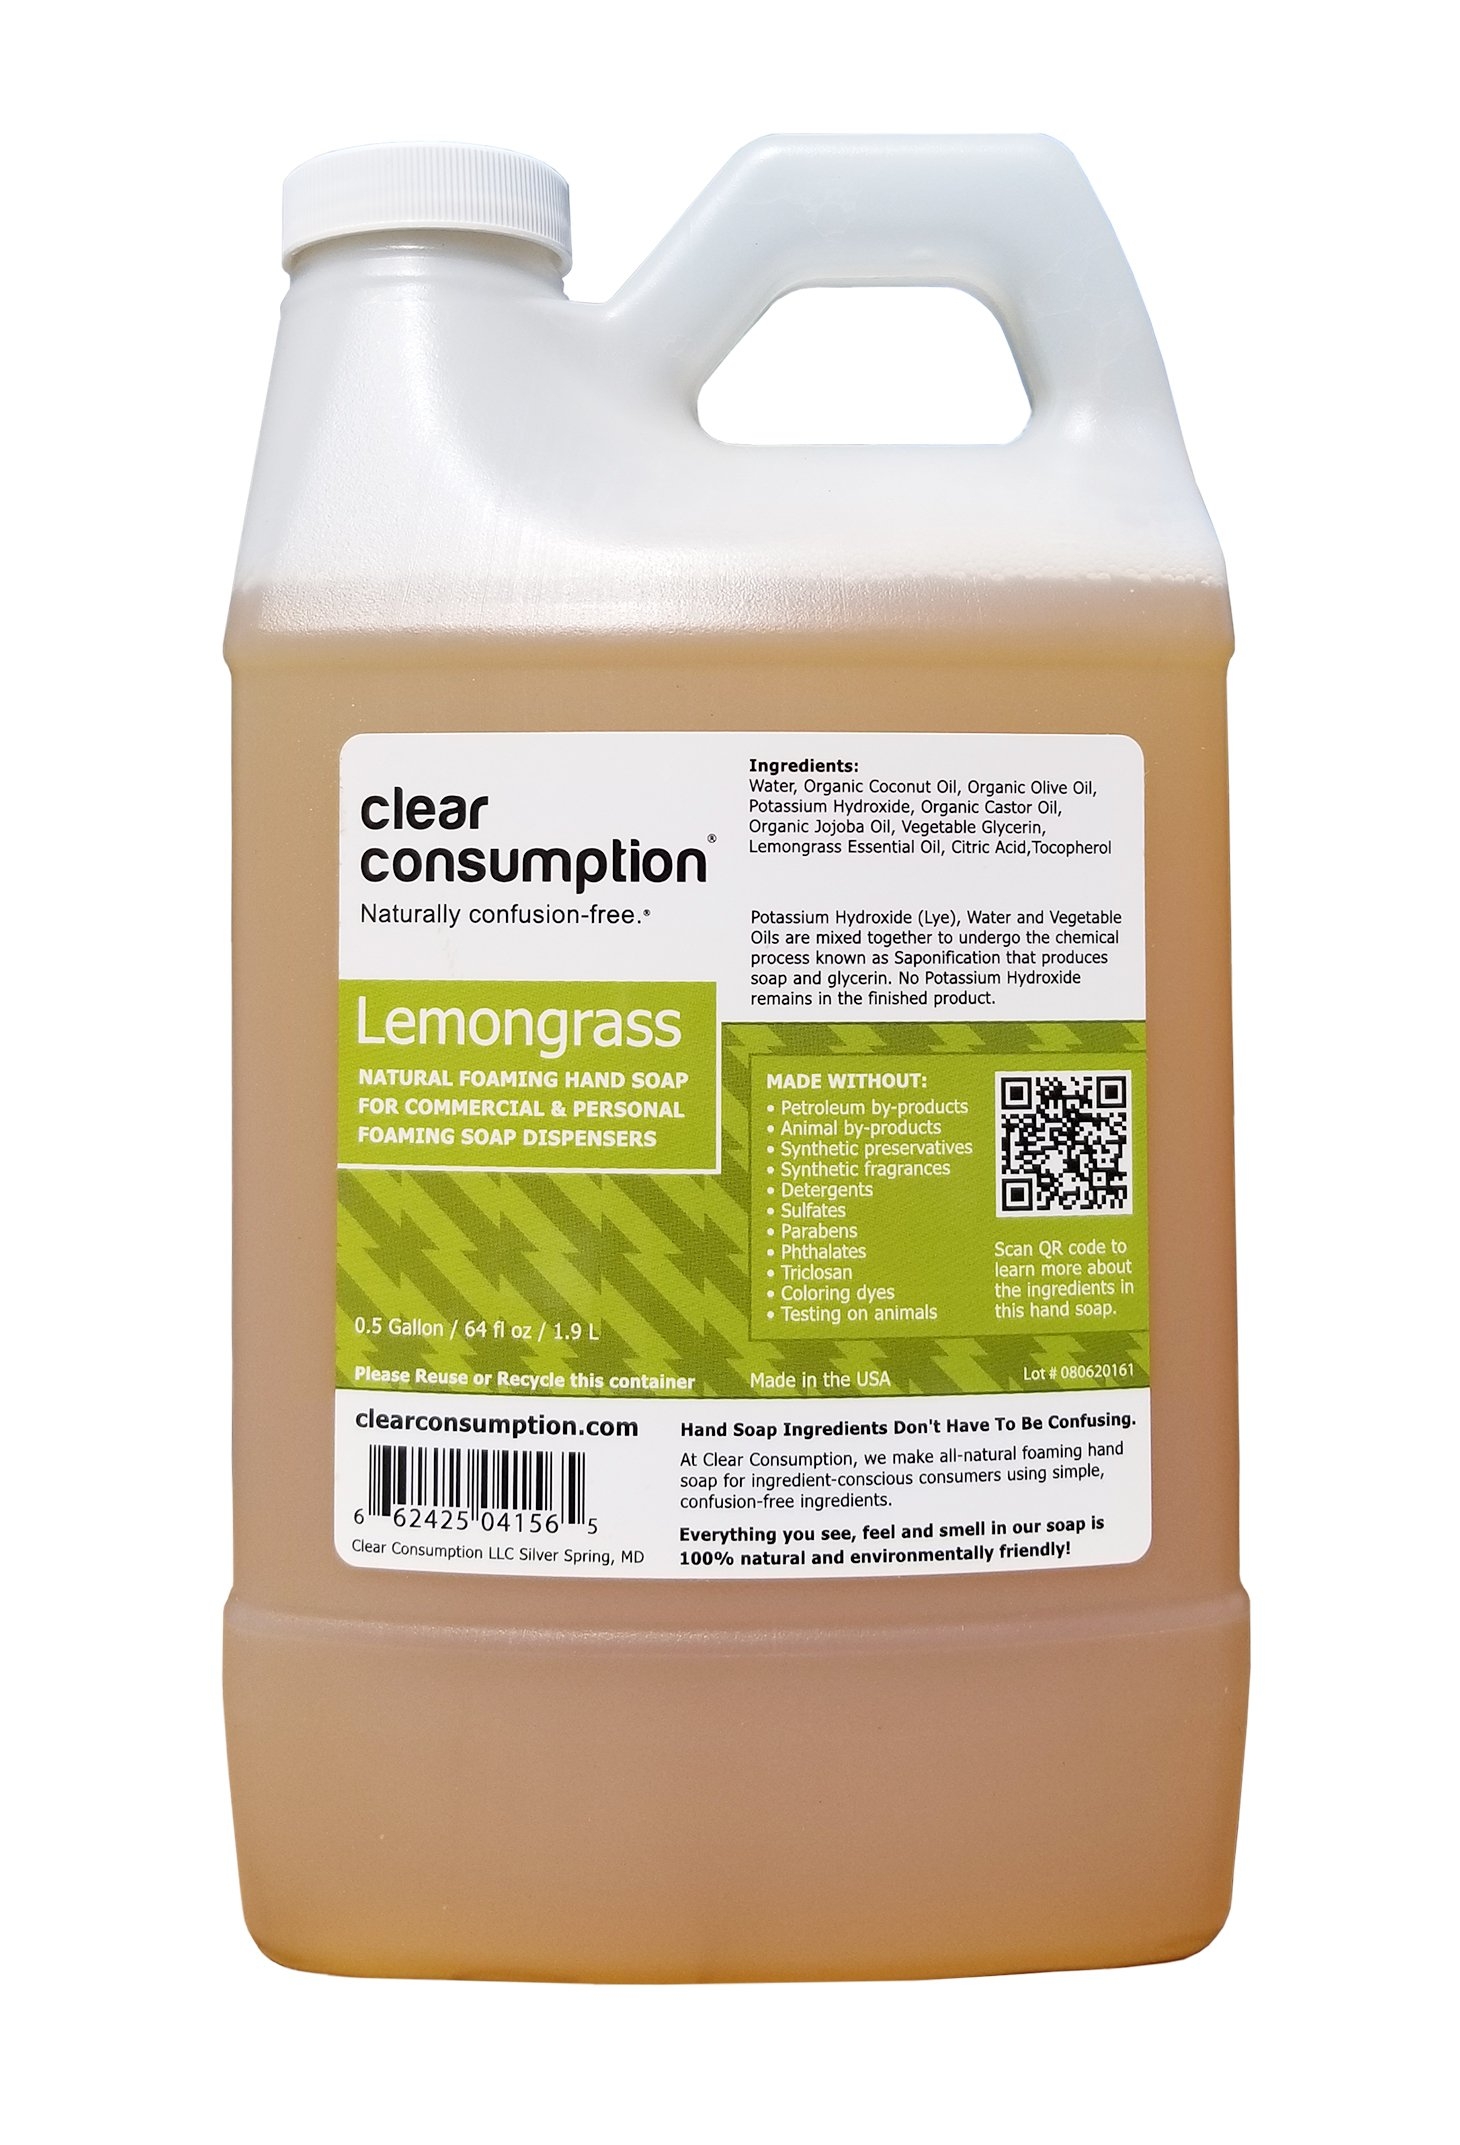 0.5 Gallon (64 oz) Lemongrass Clear Consumption Natural Foaming Hand Soap Refill - For Commercial & Personal Foaming Soap Dispensers